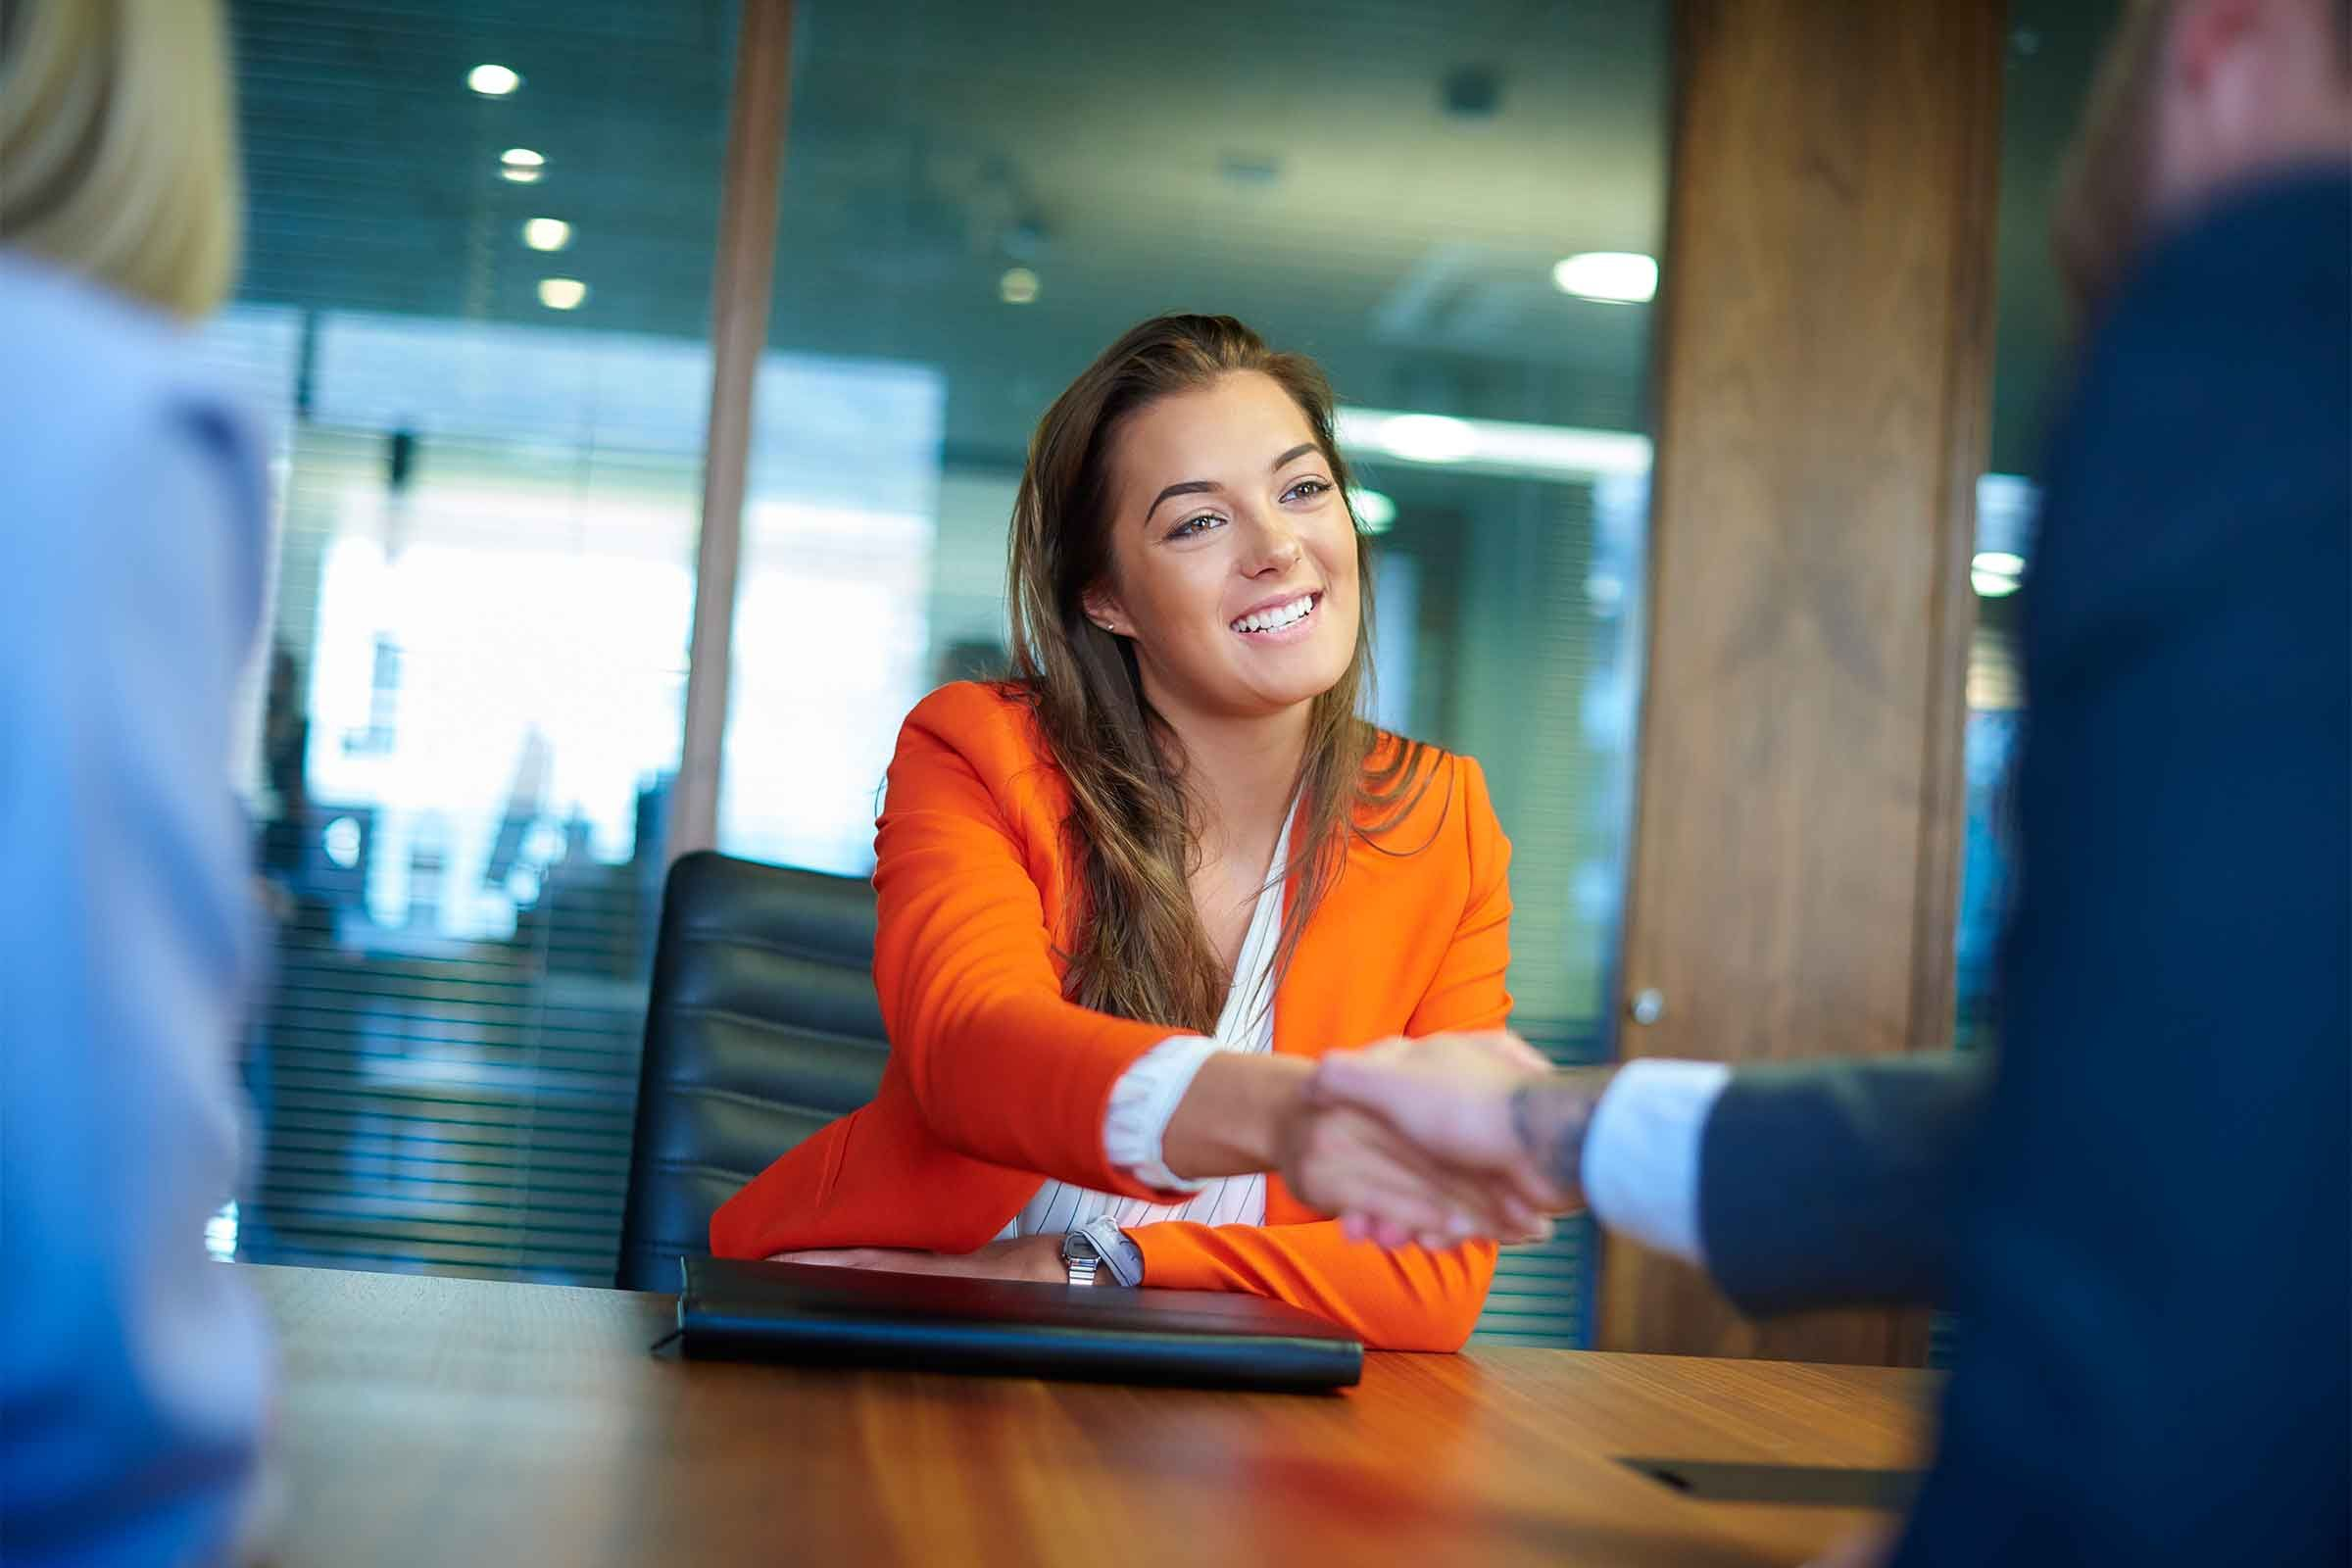 8 Proven Ways To Make A Good First Impression